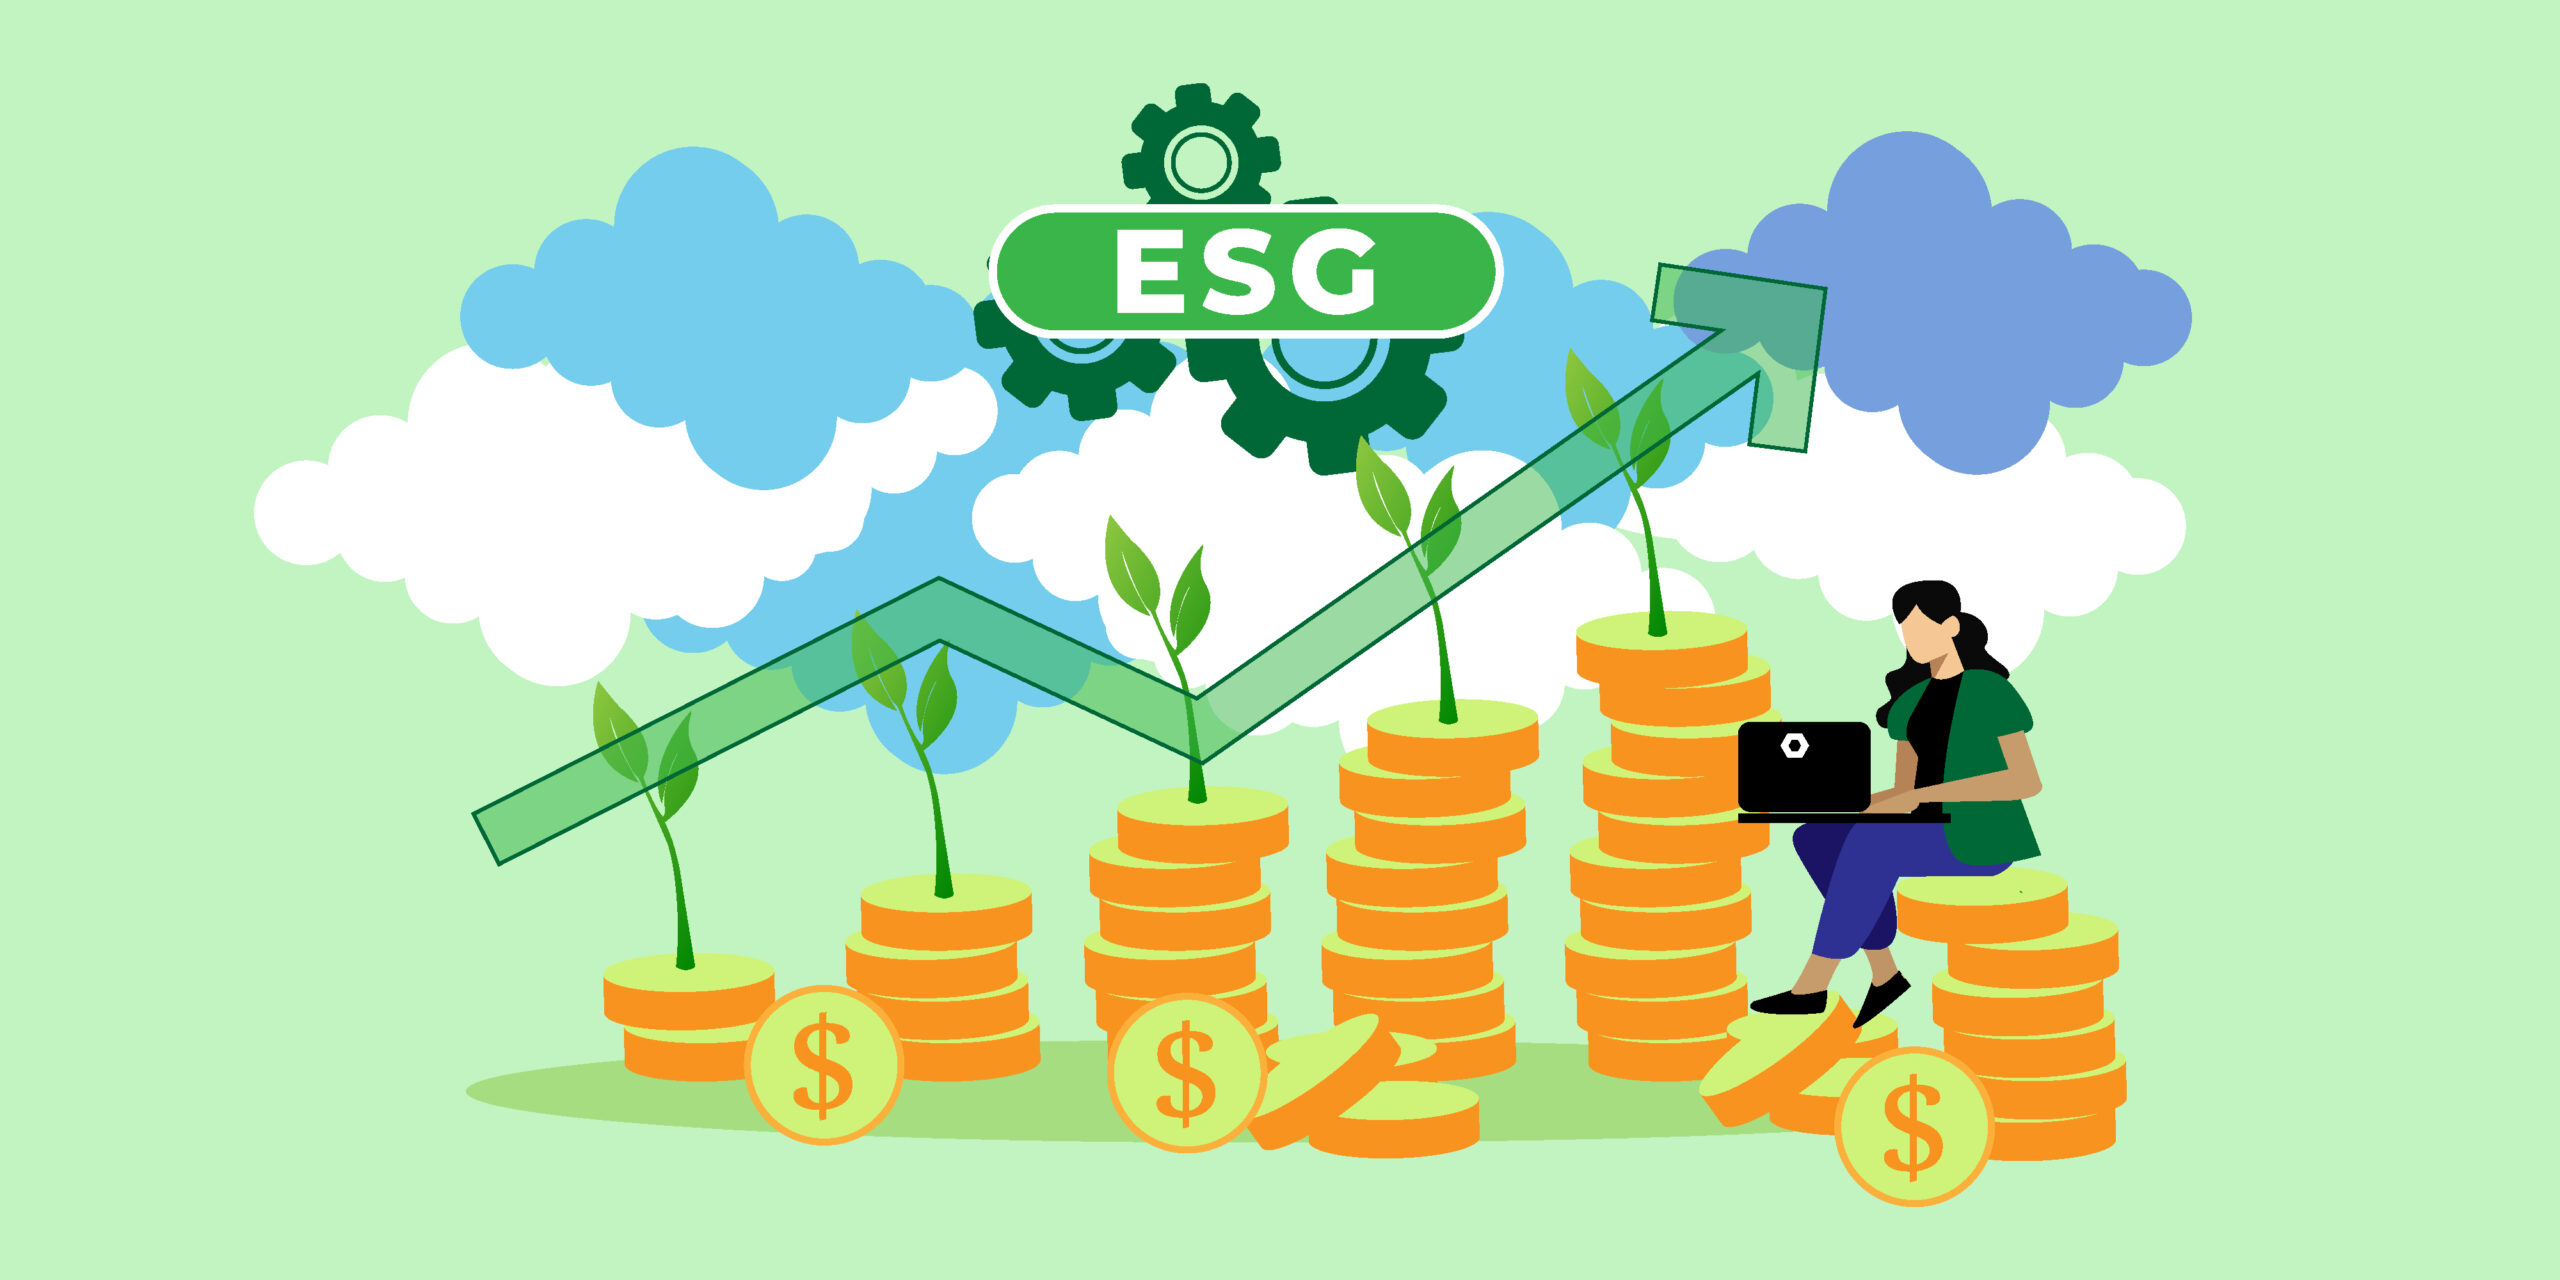 ESG Investing: What it is & Why it's Important